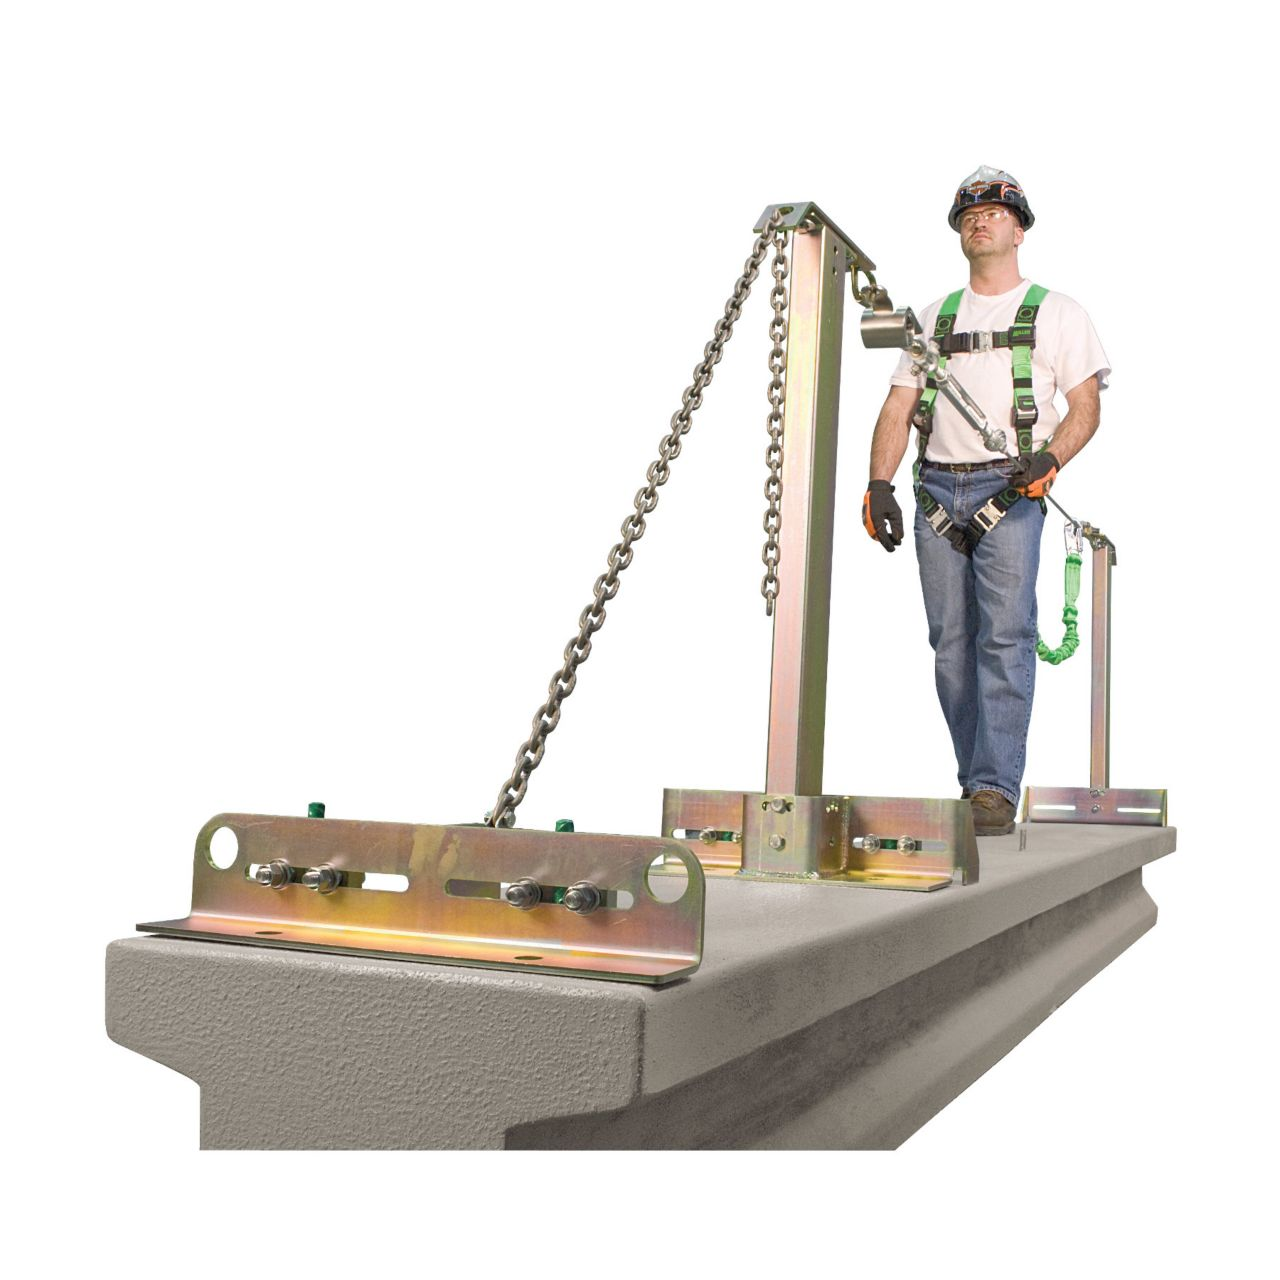 product image of man standing on Miller SkyGrip temporary horizontal lifeline systems